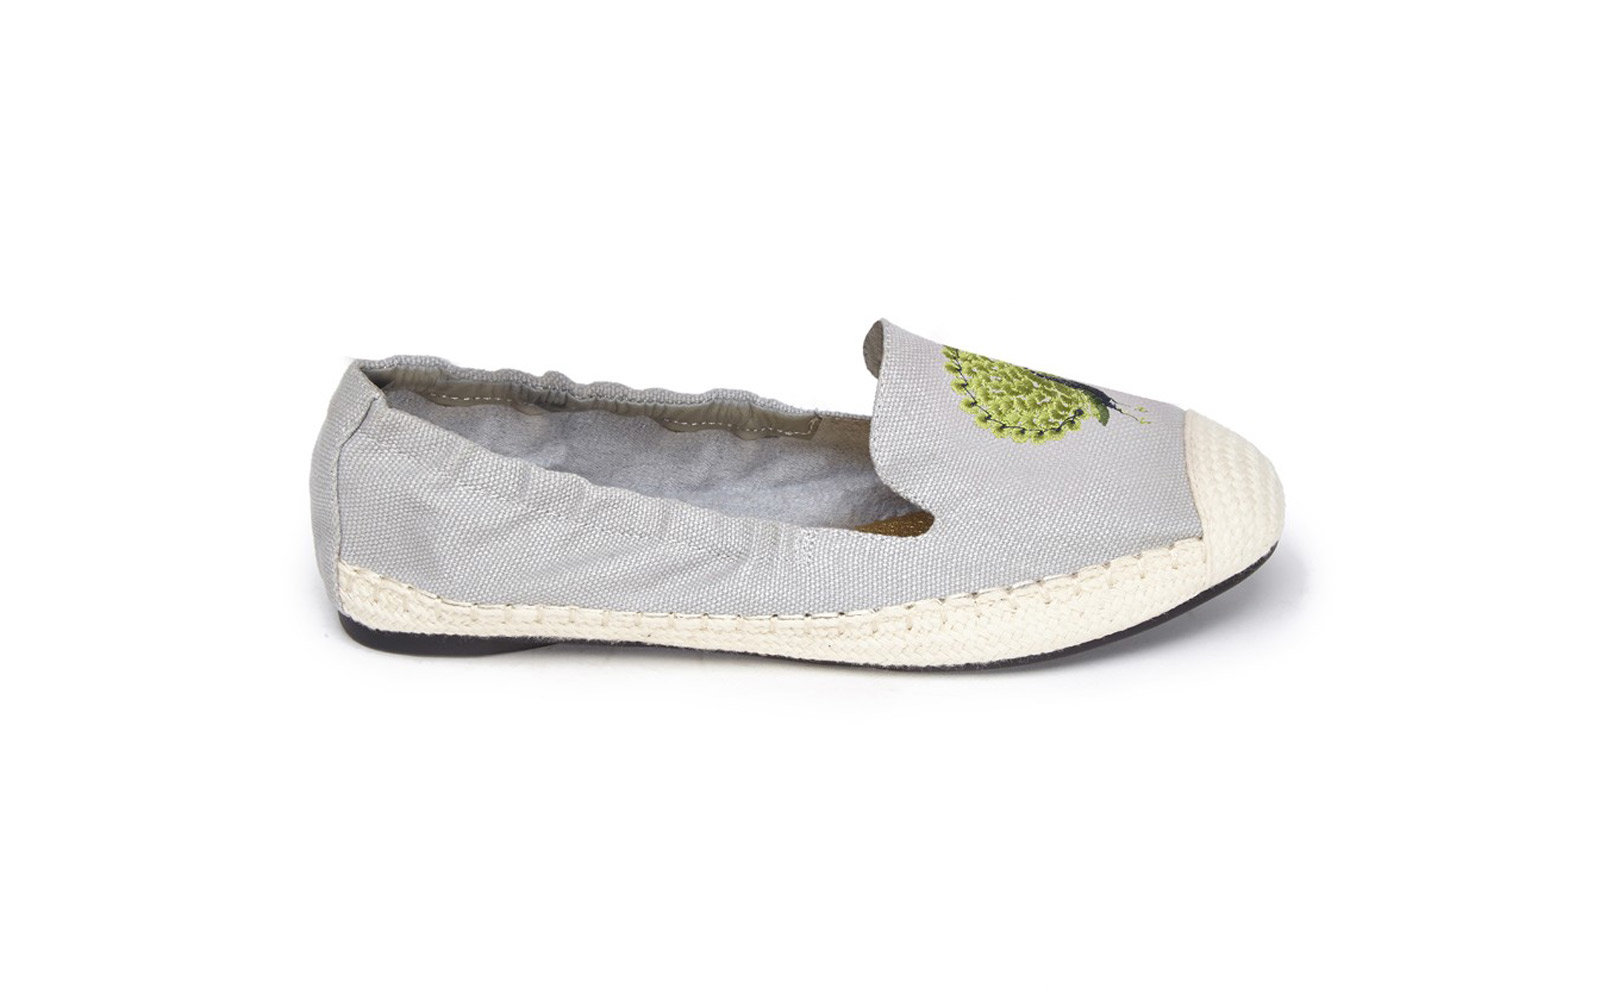 Cocorose London Carnaby Foldable Espadrilles